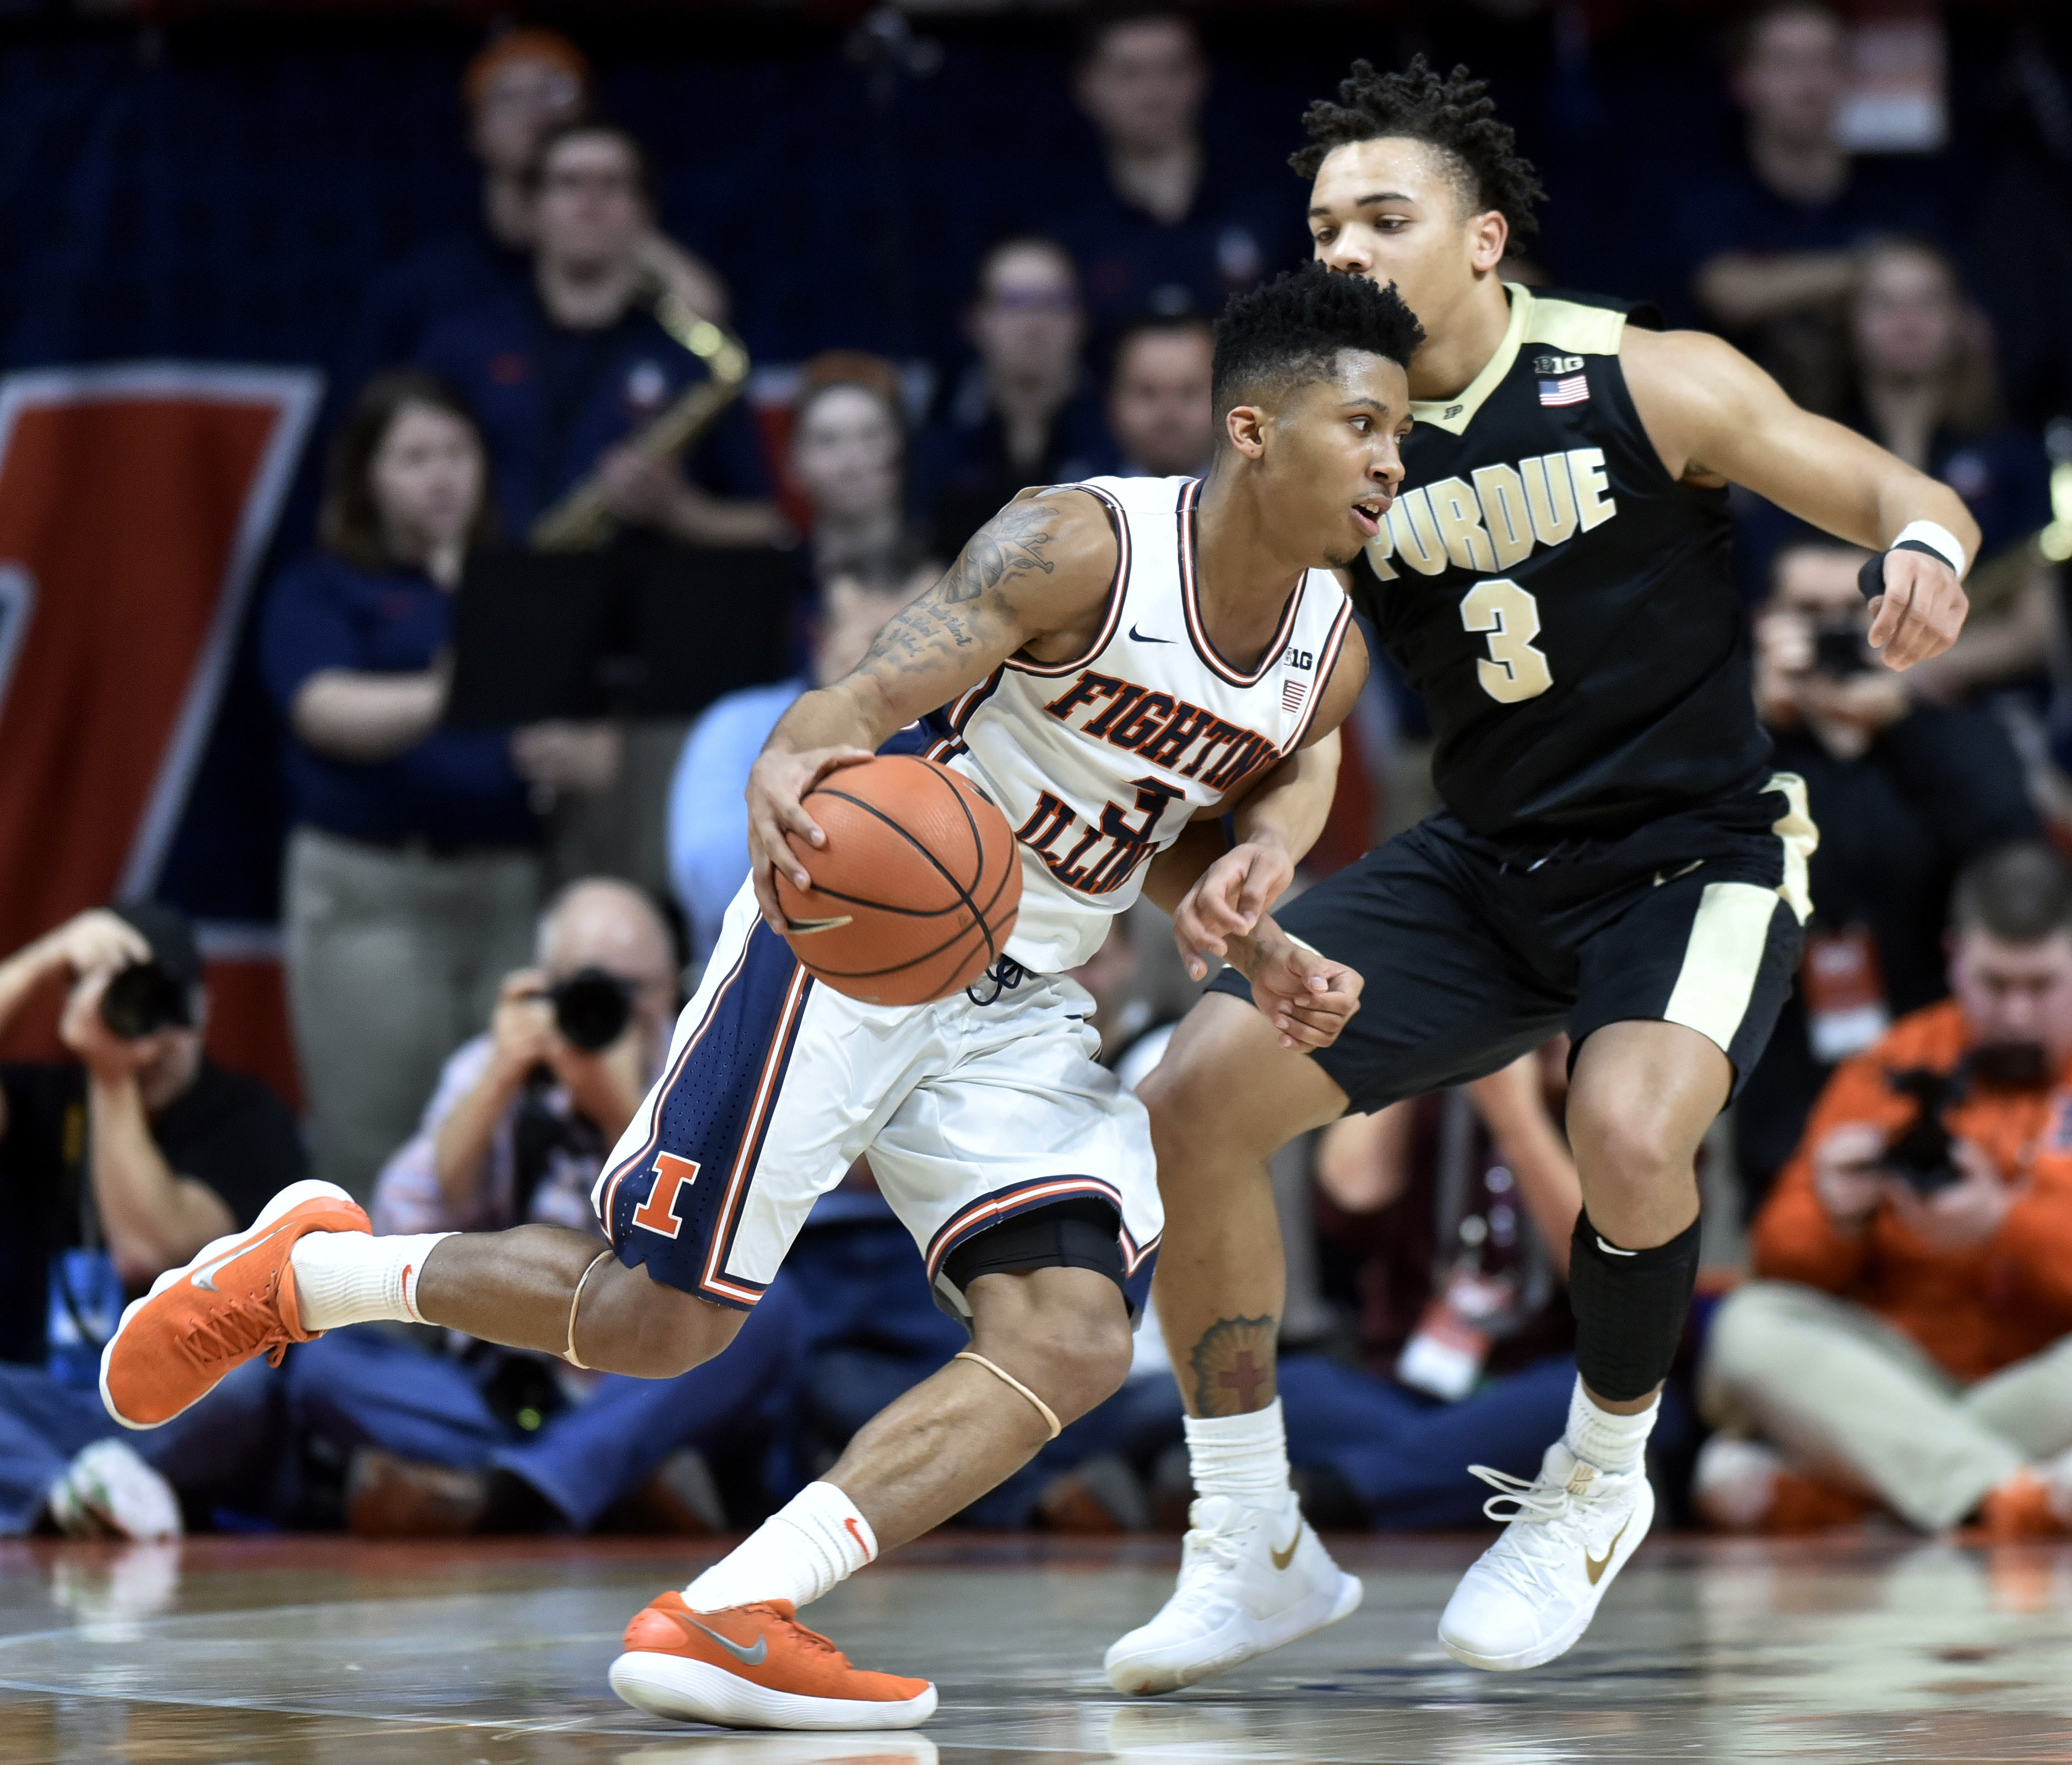 Illinois guard Te'Jon Lucas makes a move against Purdue guard Carsen Edwards. Lucas is transferring to BYU this for the upcoming season.